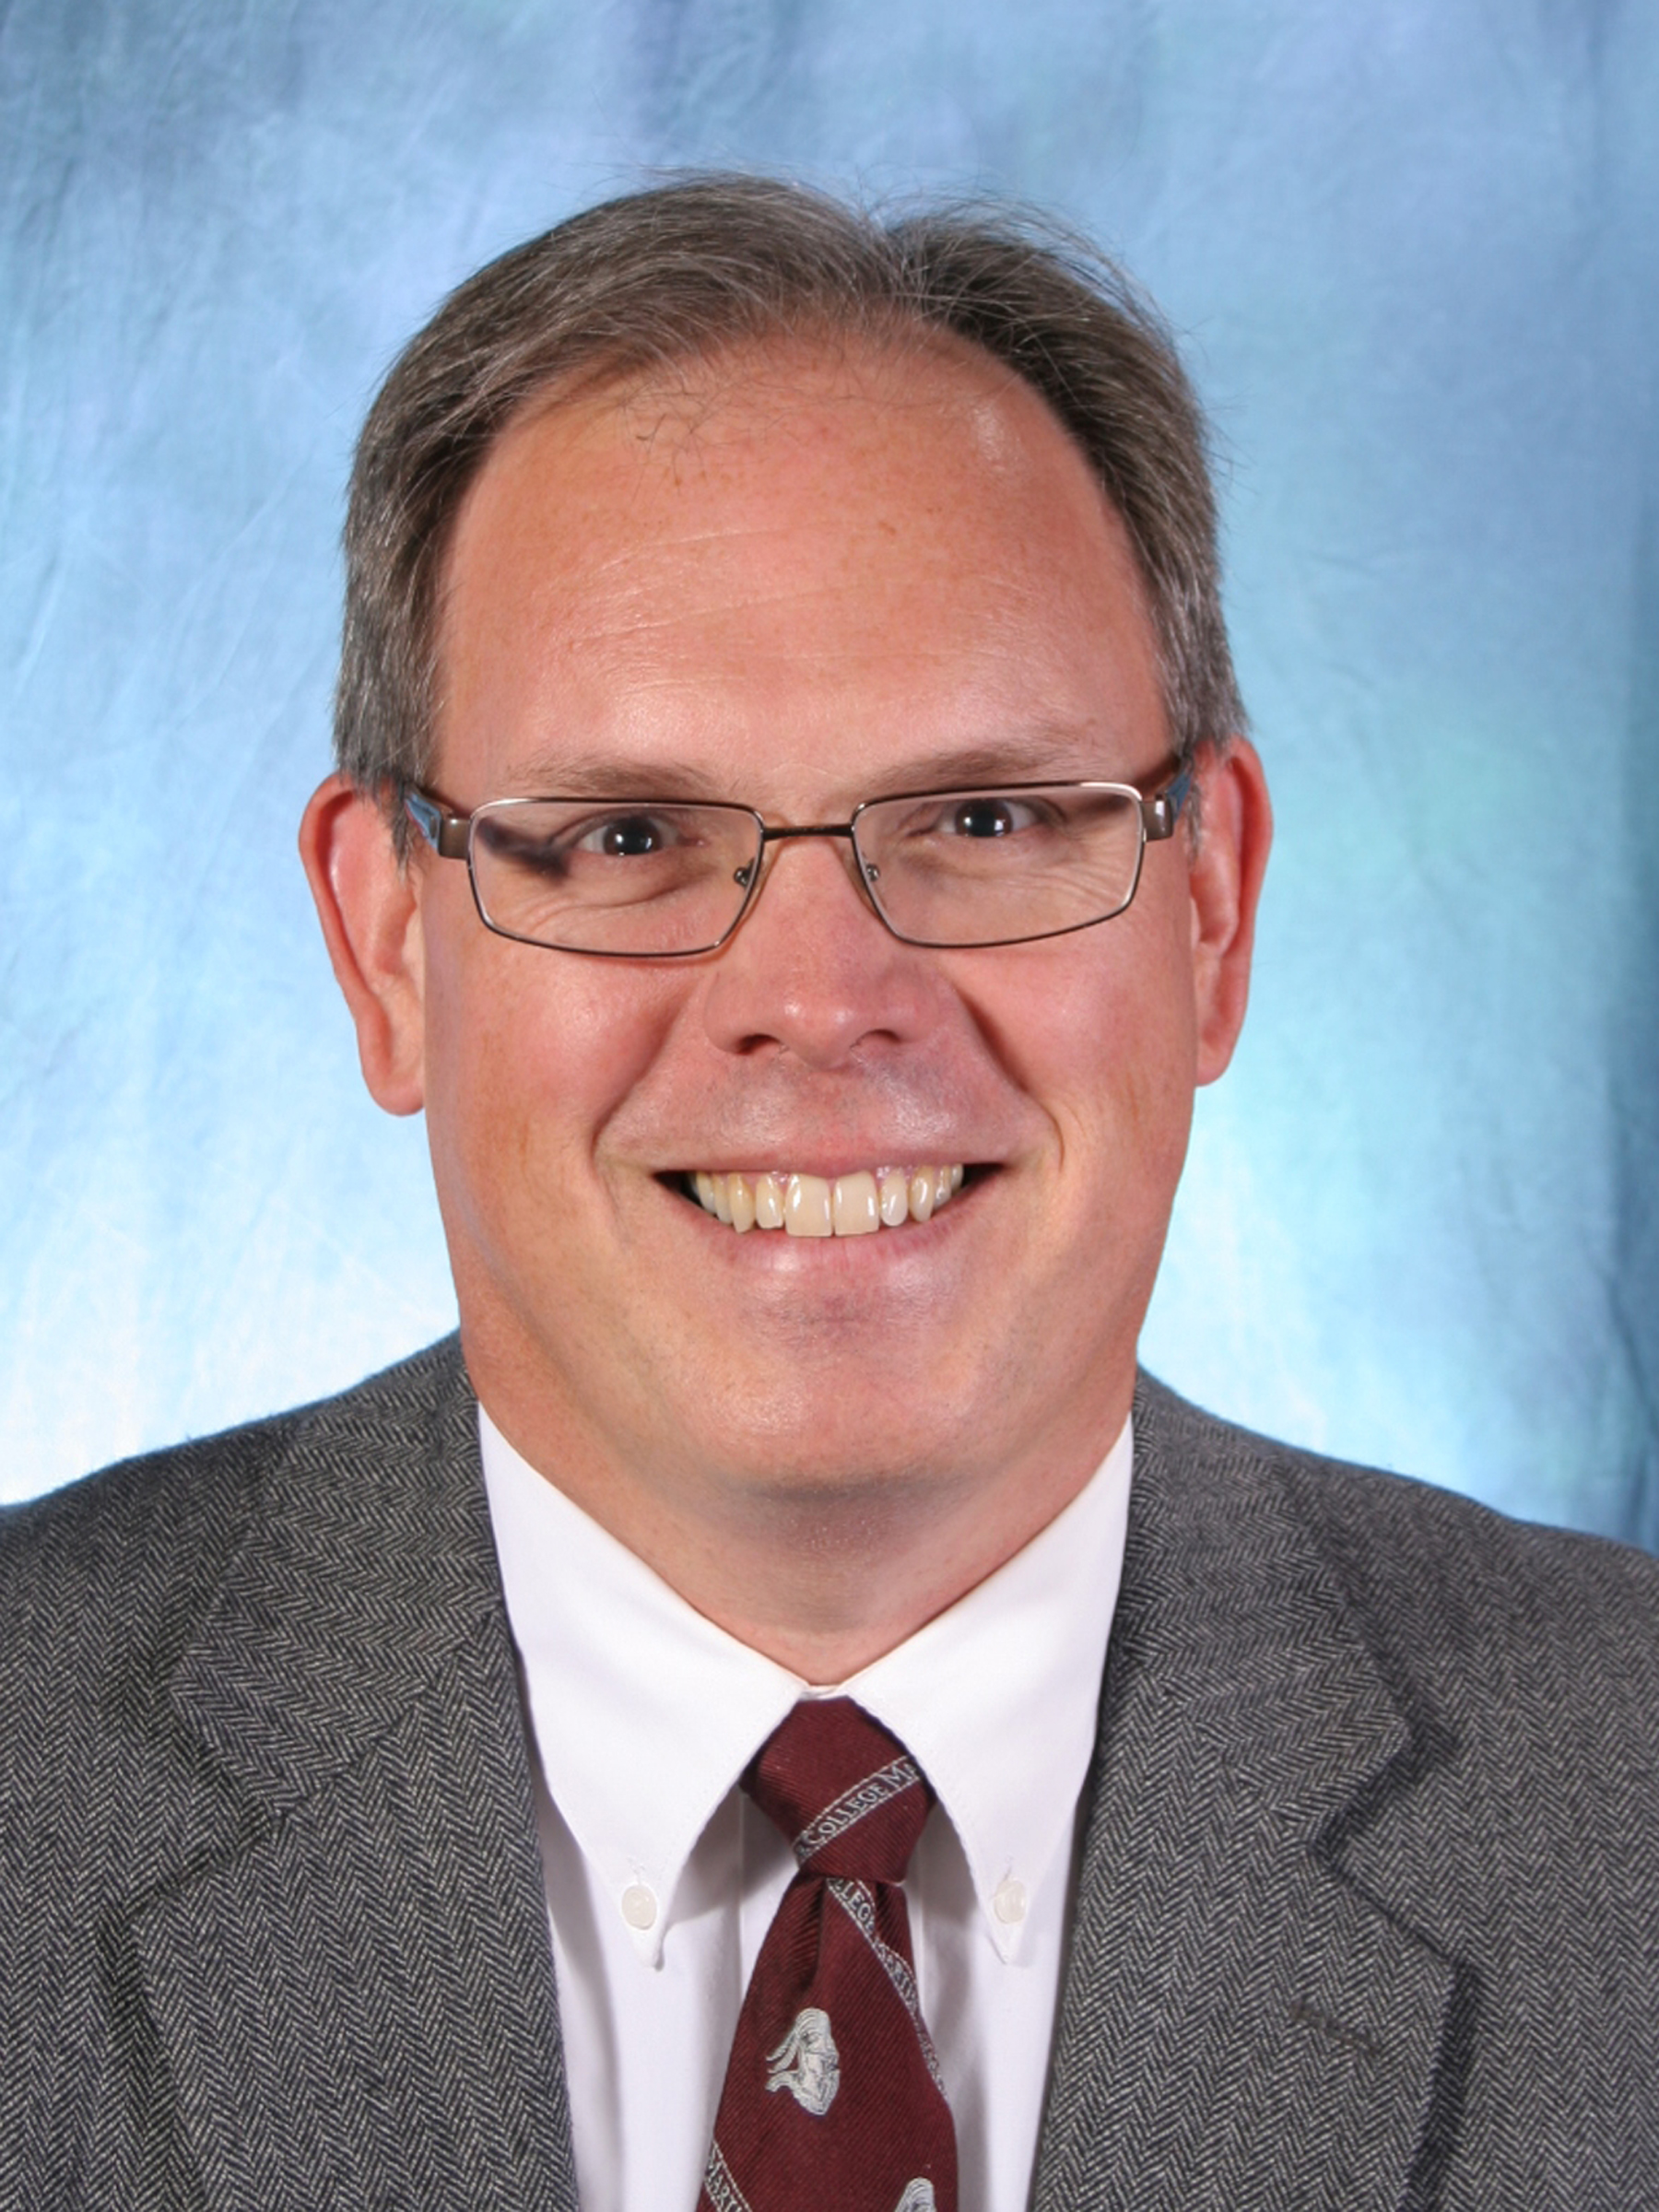 Prof. Keith Wessel